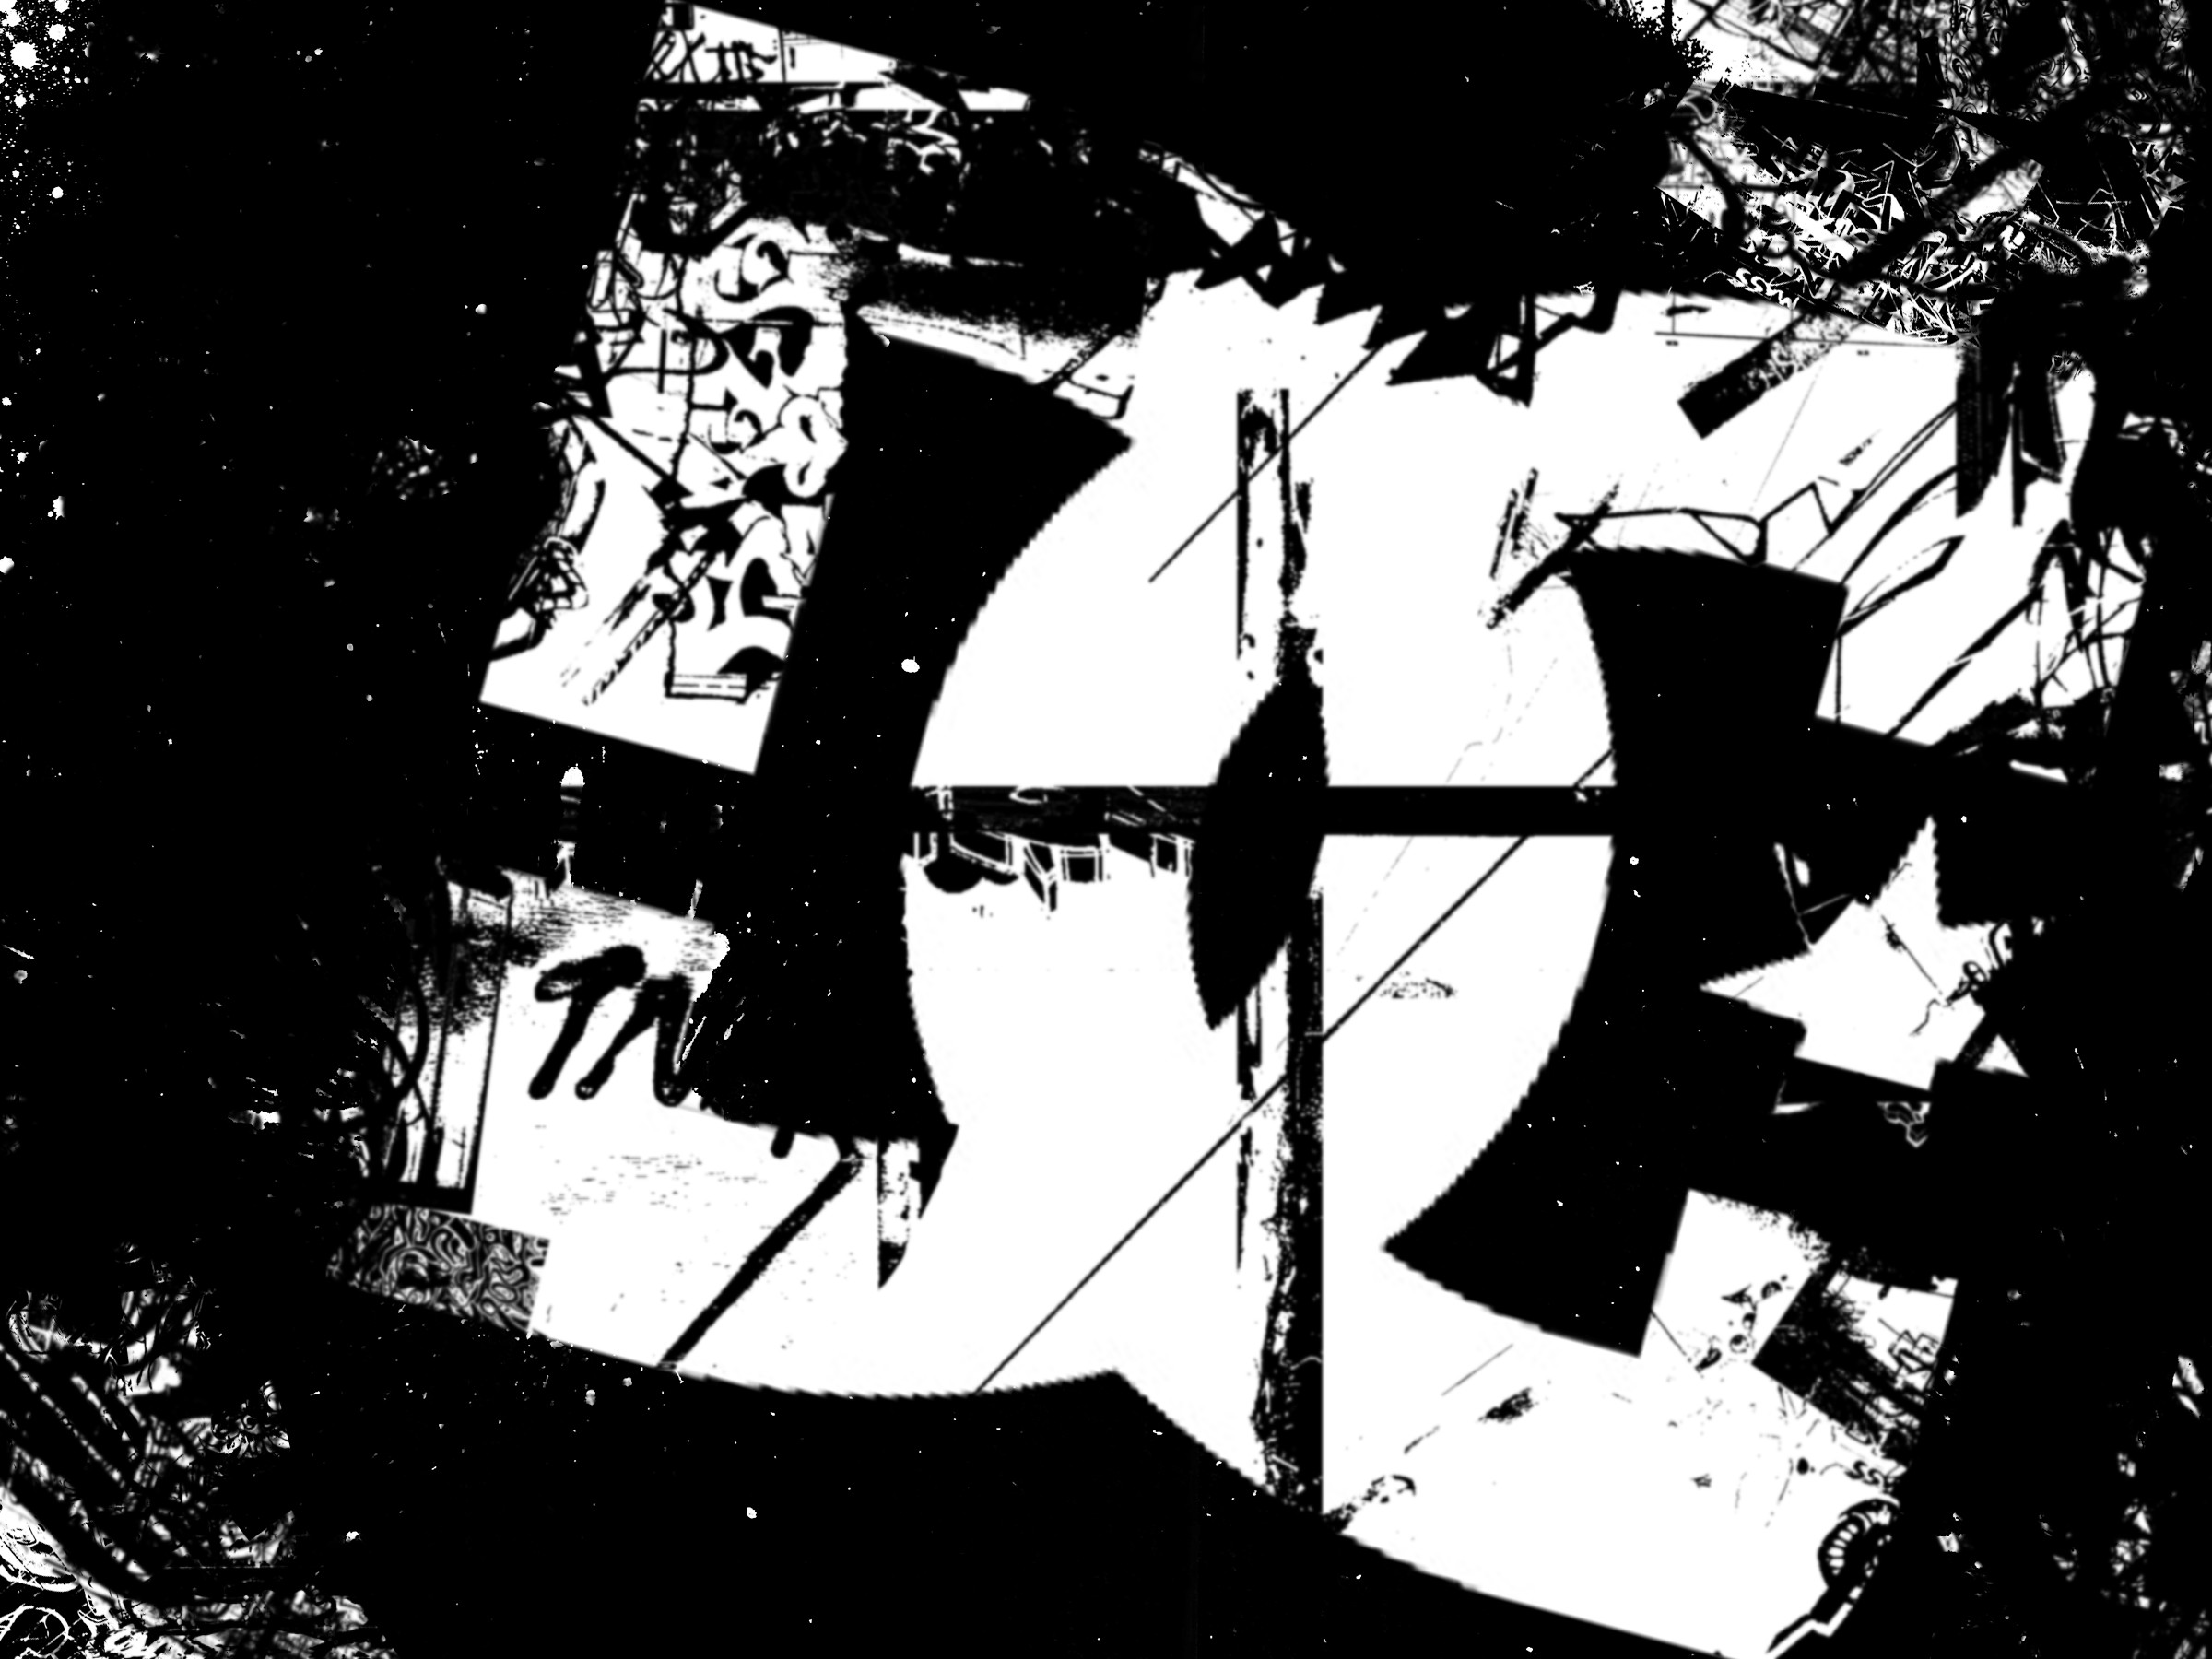 2400x1800 dc shoes logo backgrounds hd